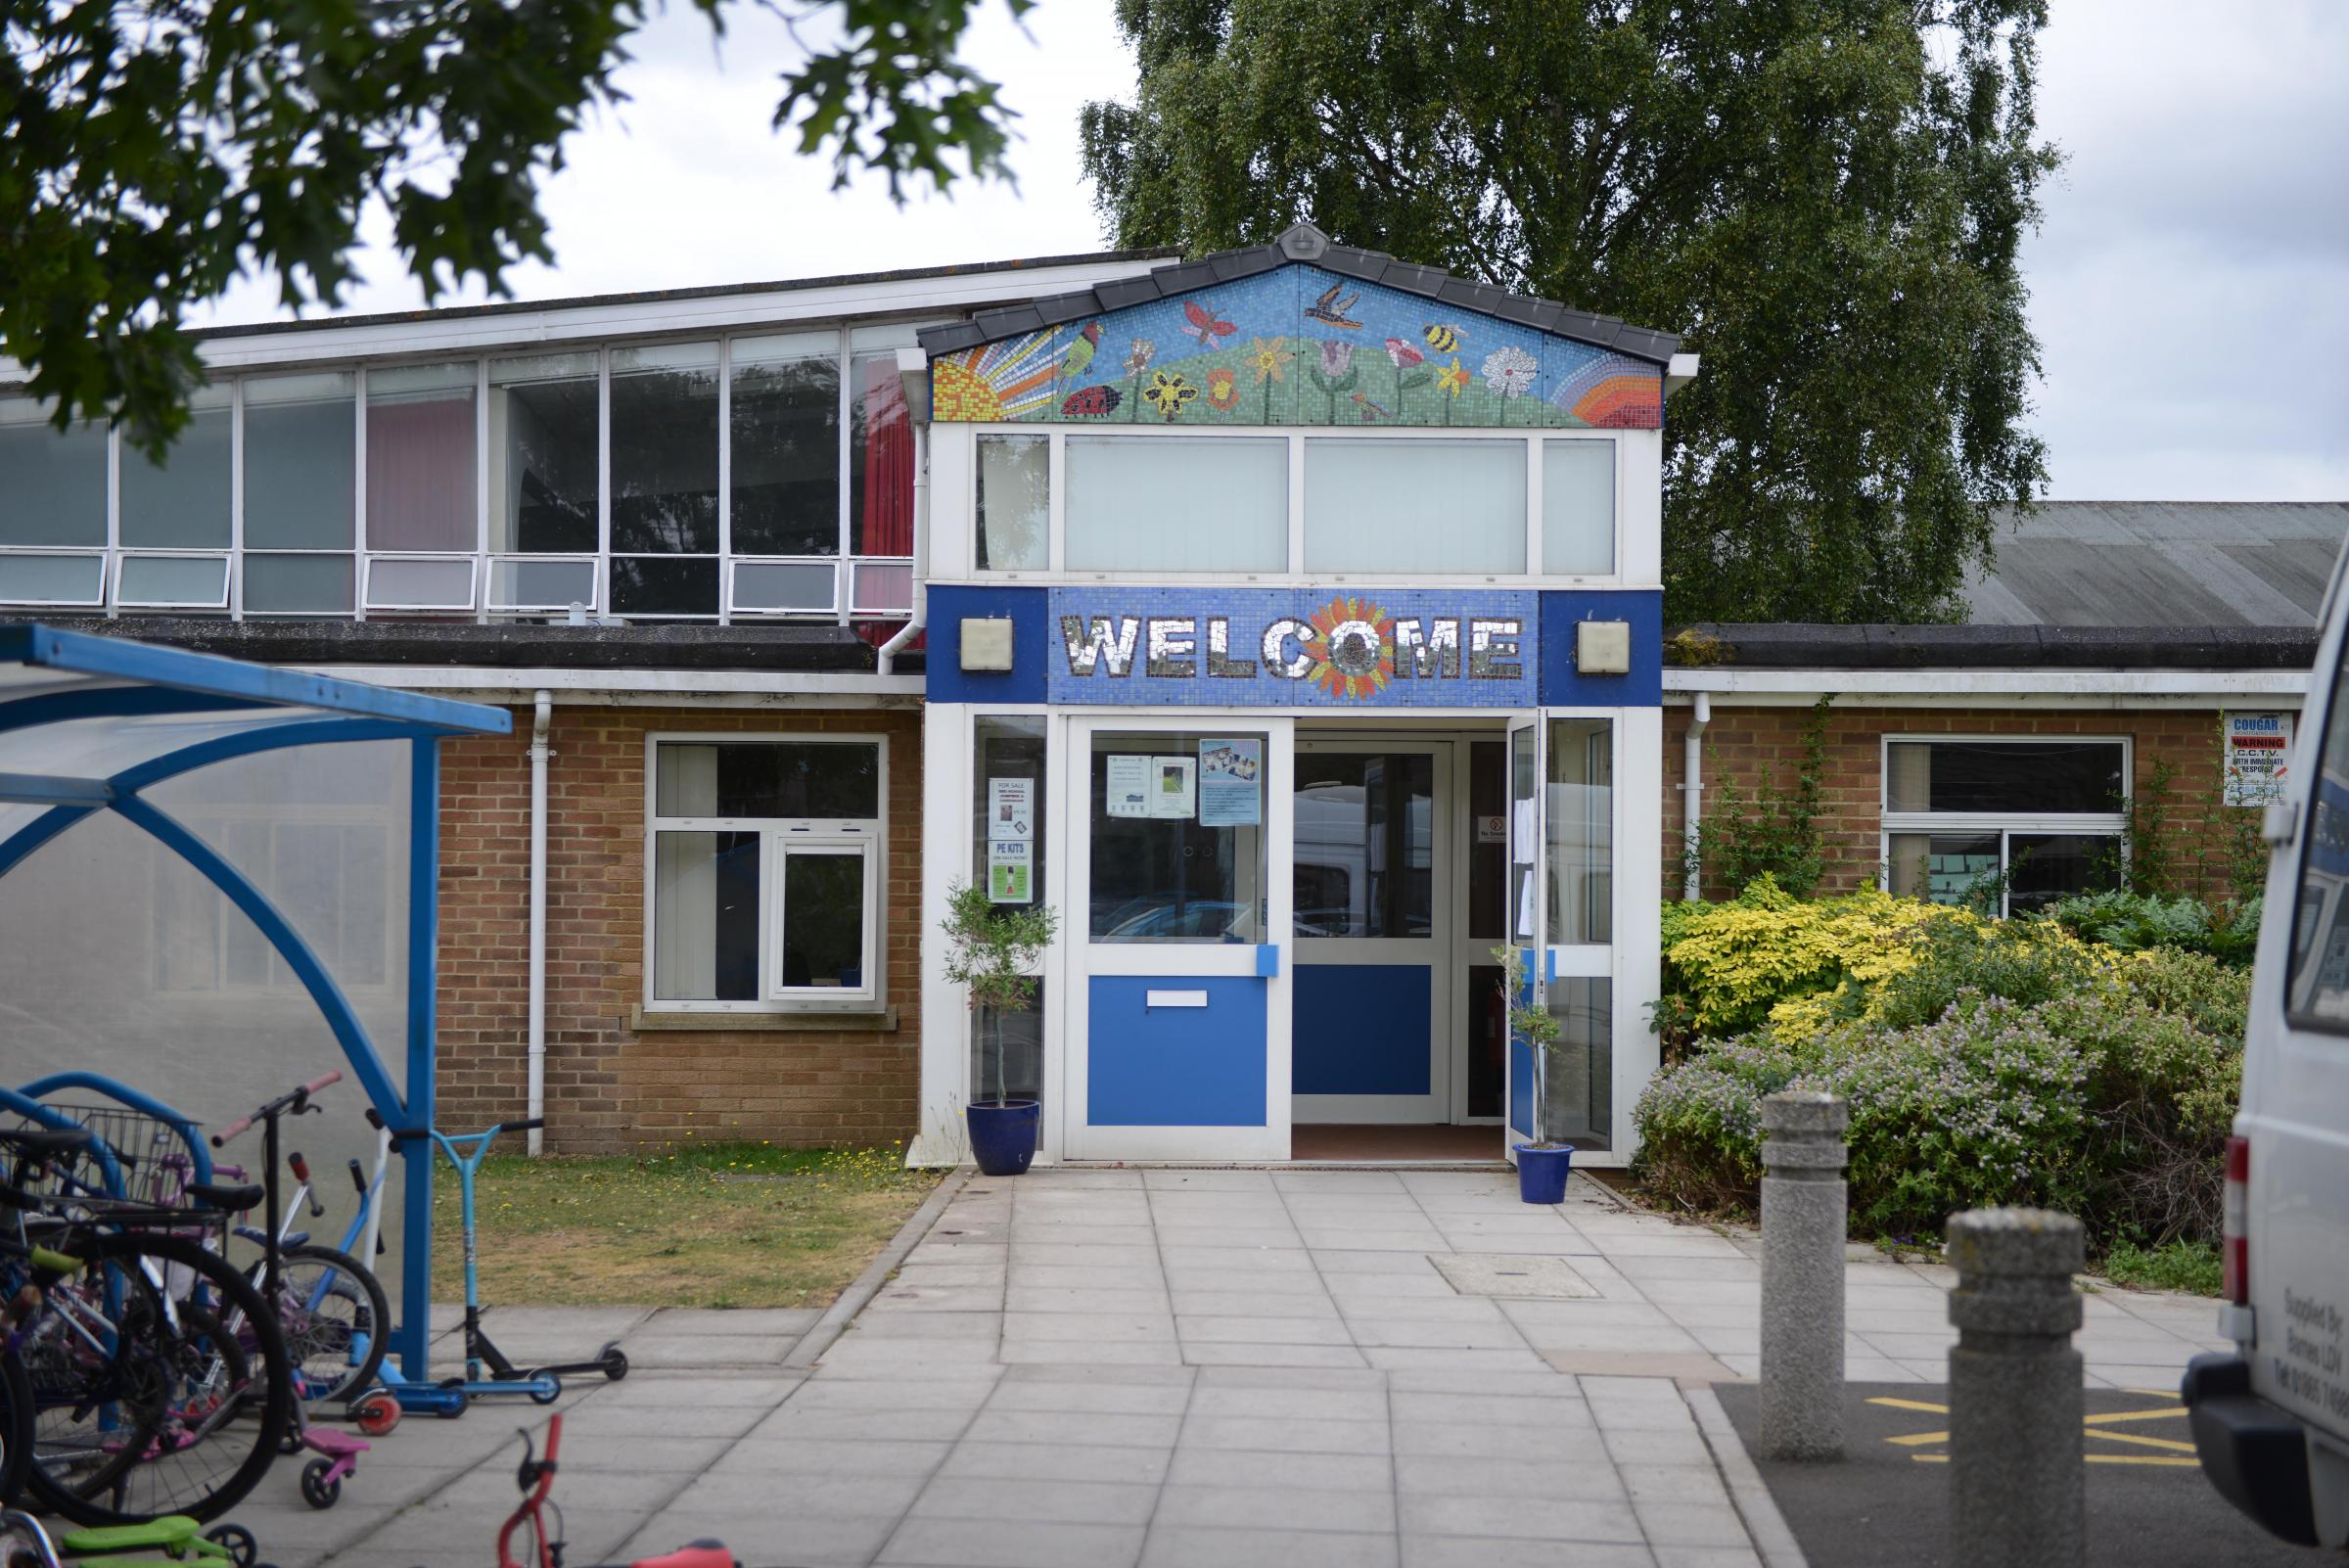 Orchard Meadow Primary School